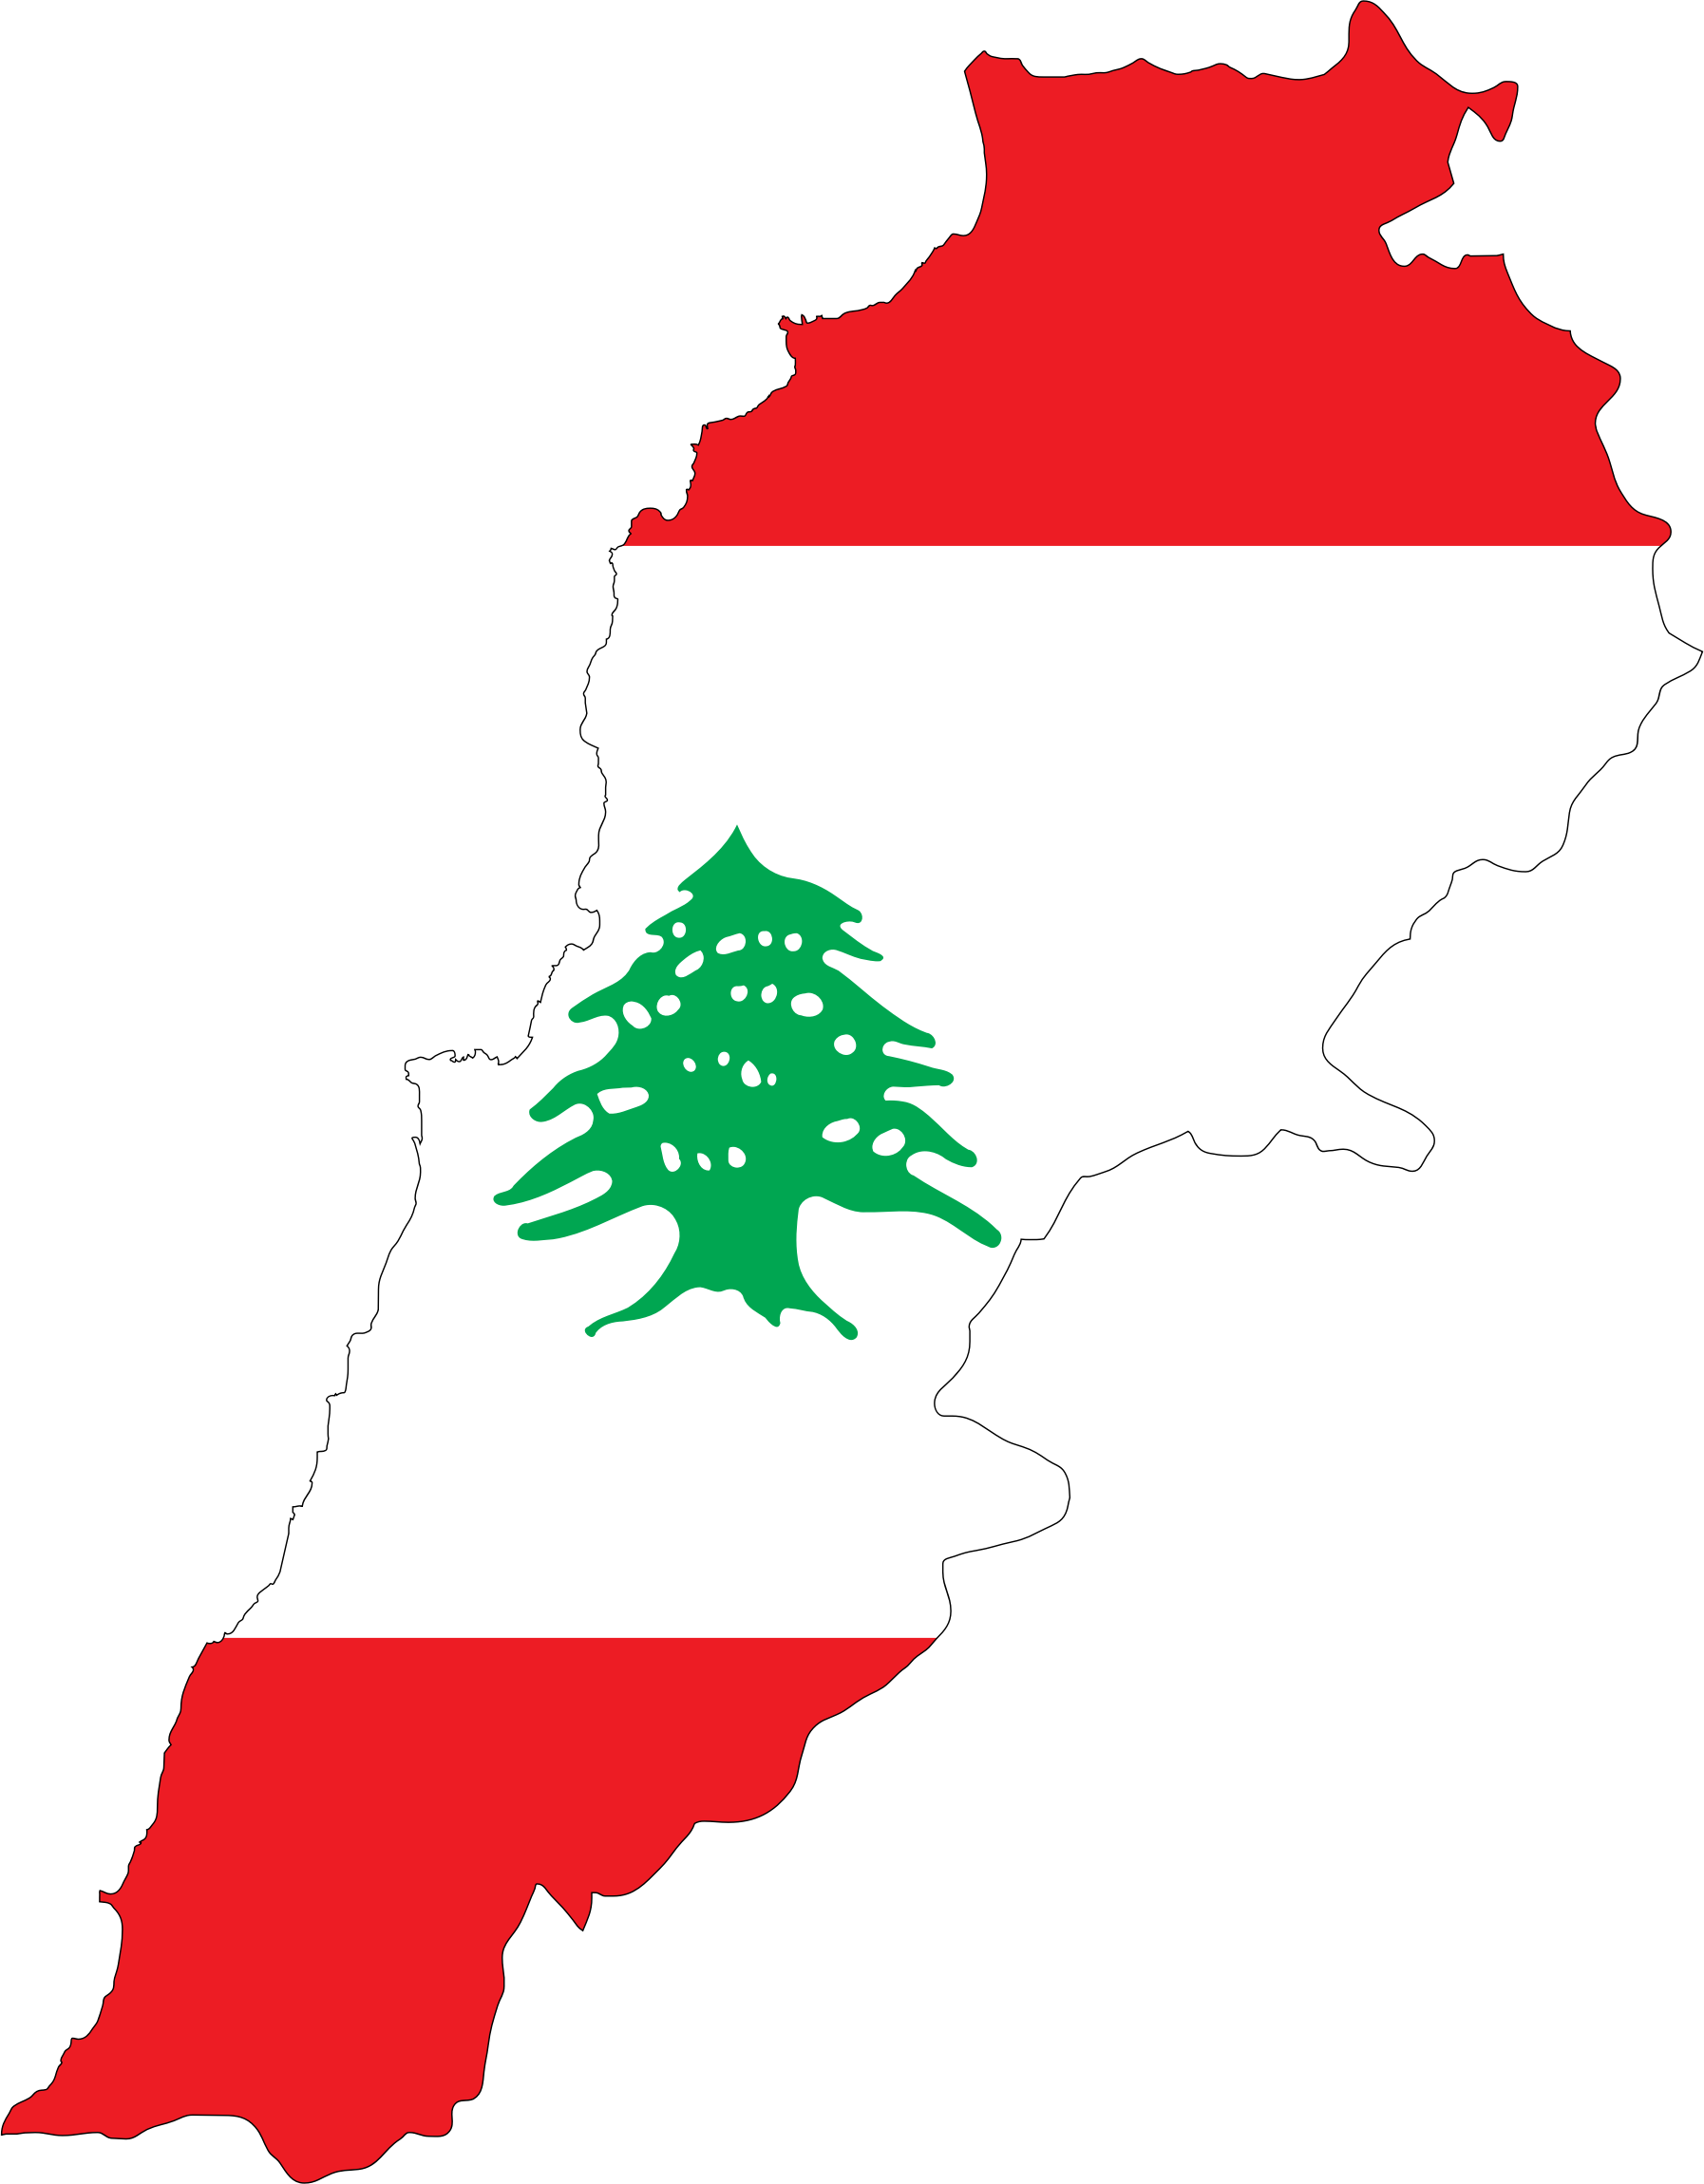 Lebanon Map Flag With Stroke by GDJ